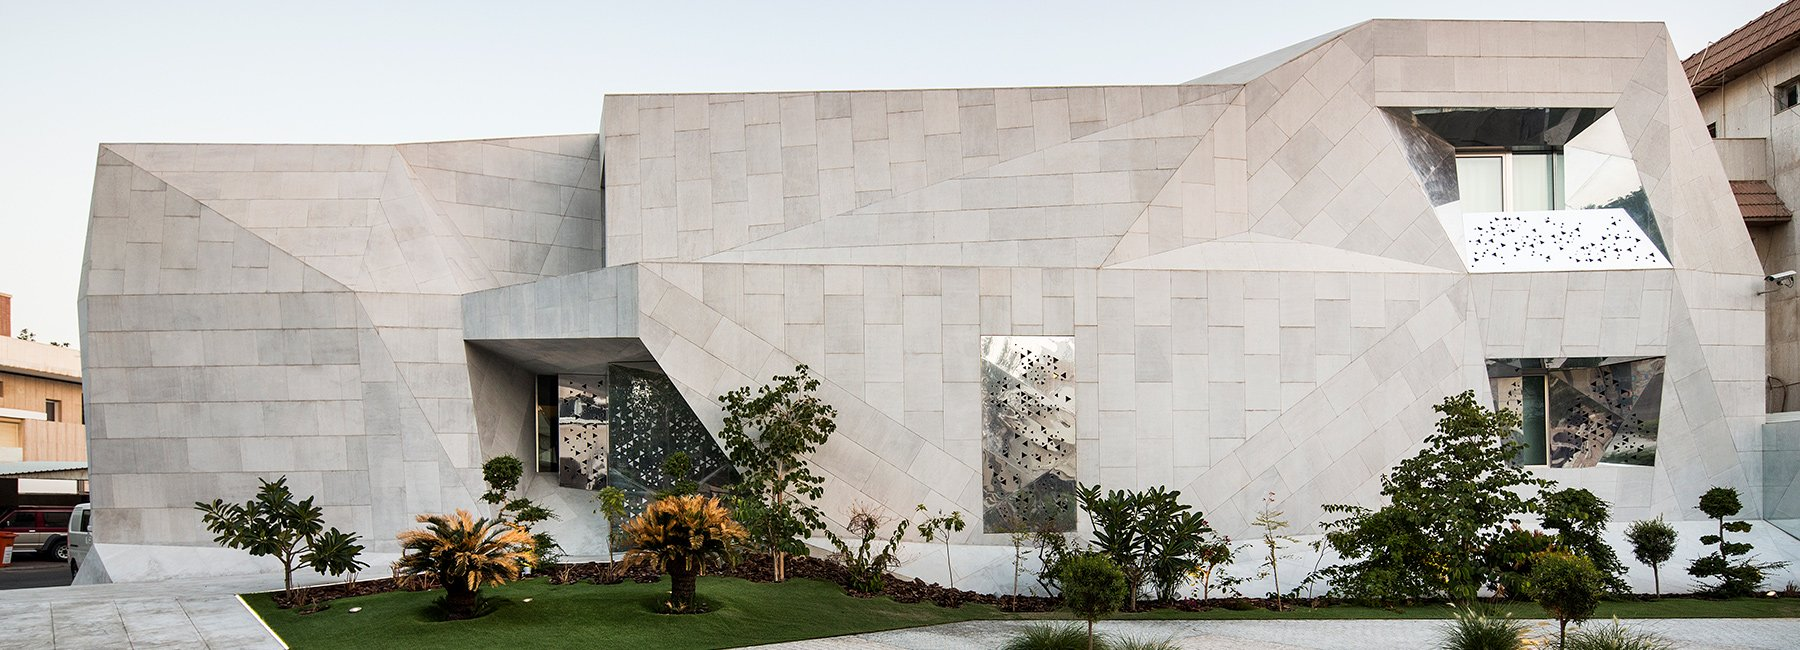 located in Kuwait city, 'rock house' by AGi architects is clad with reinforced concrete formed similarly to folded origami